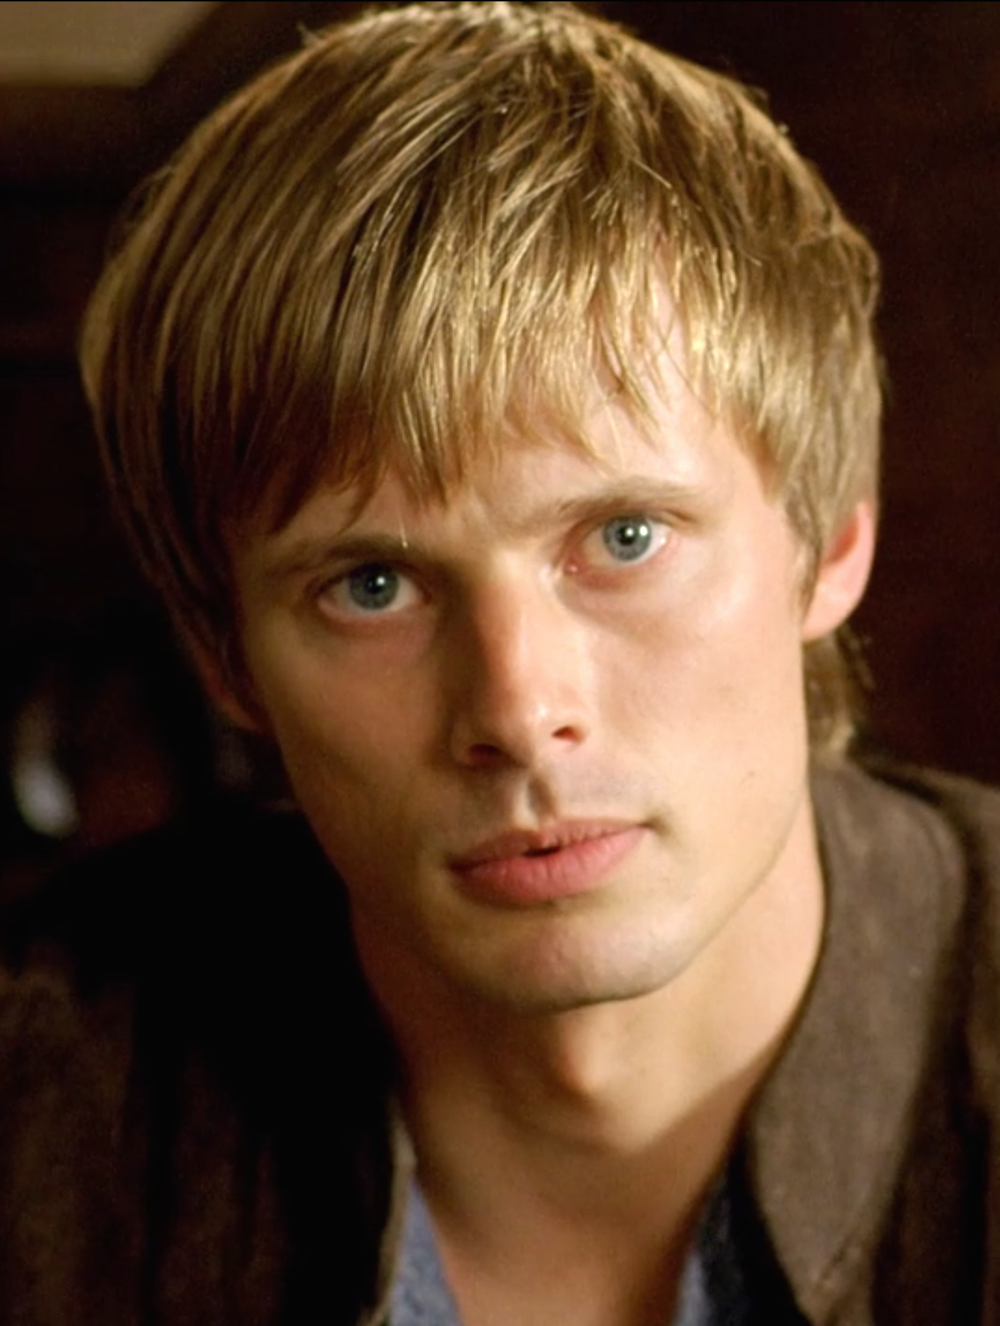 Bradley James as Prince/King Arthur in the BBC's The Adventures of Merlin.